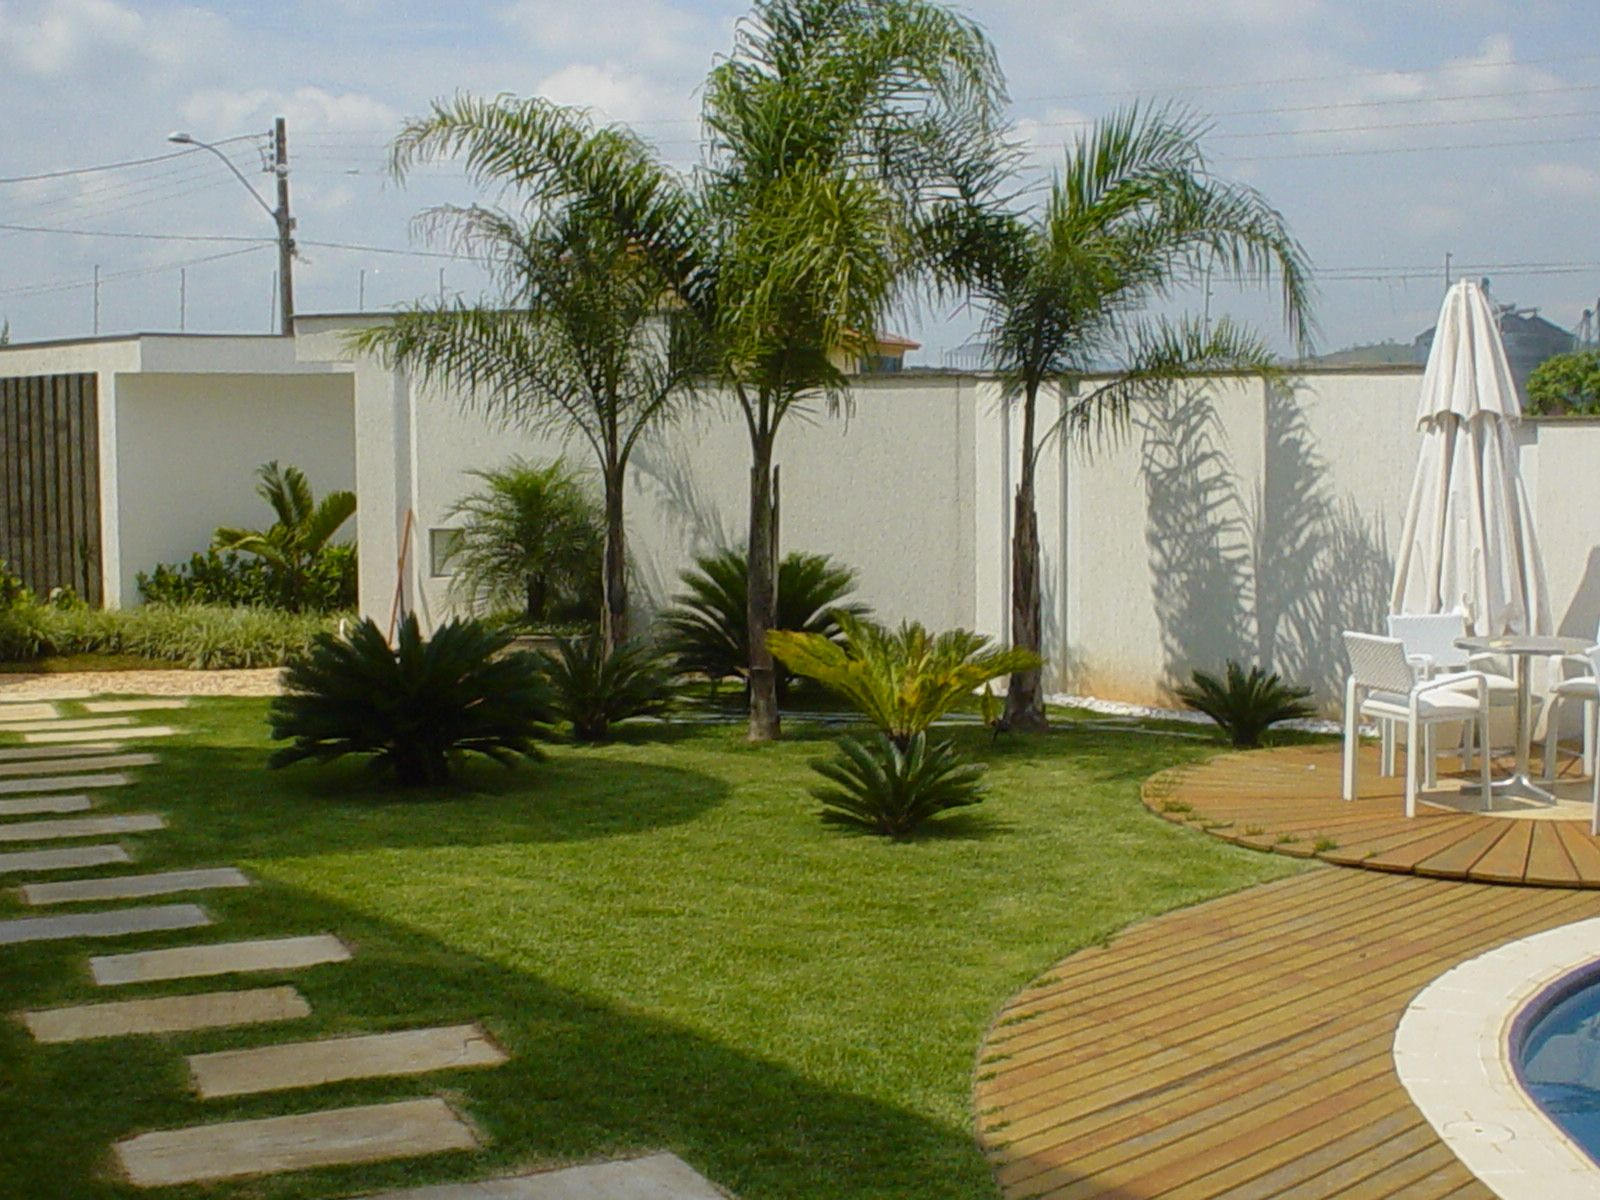 Paisagismo e jardinagem residencial com deck jardins for Jardins tropicaux contemporains